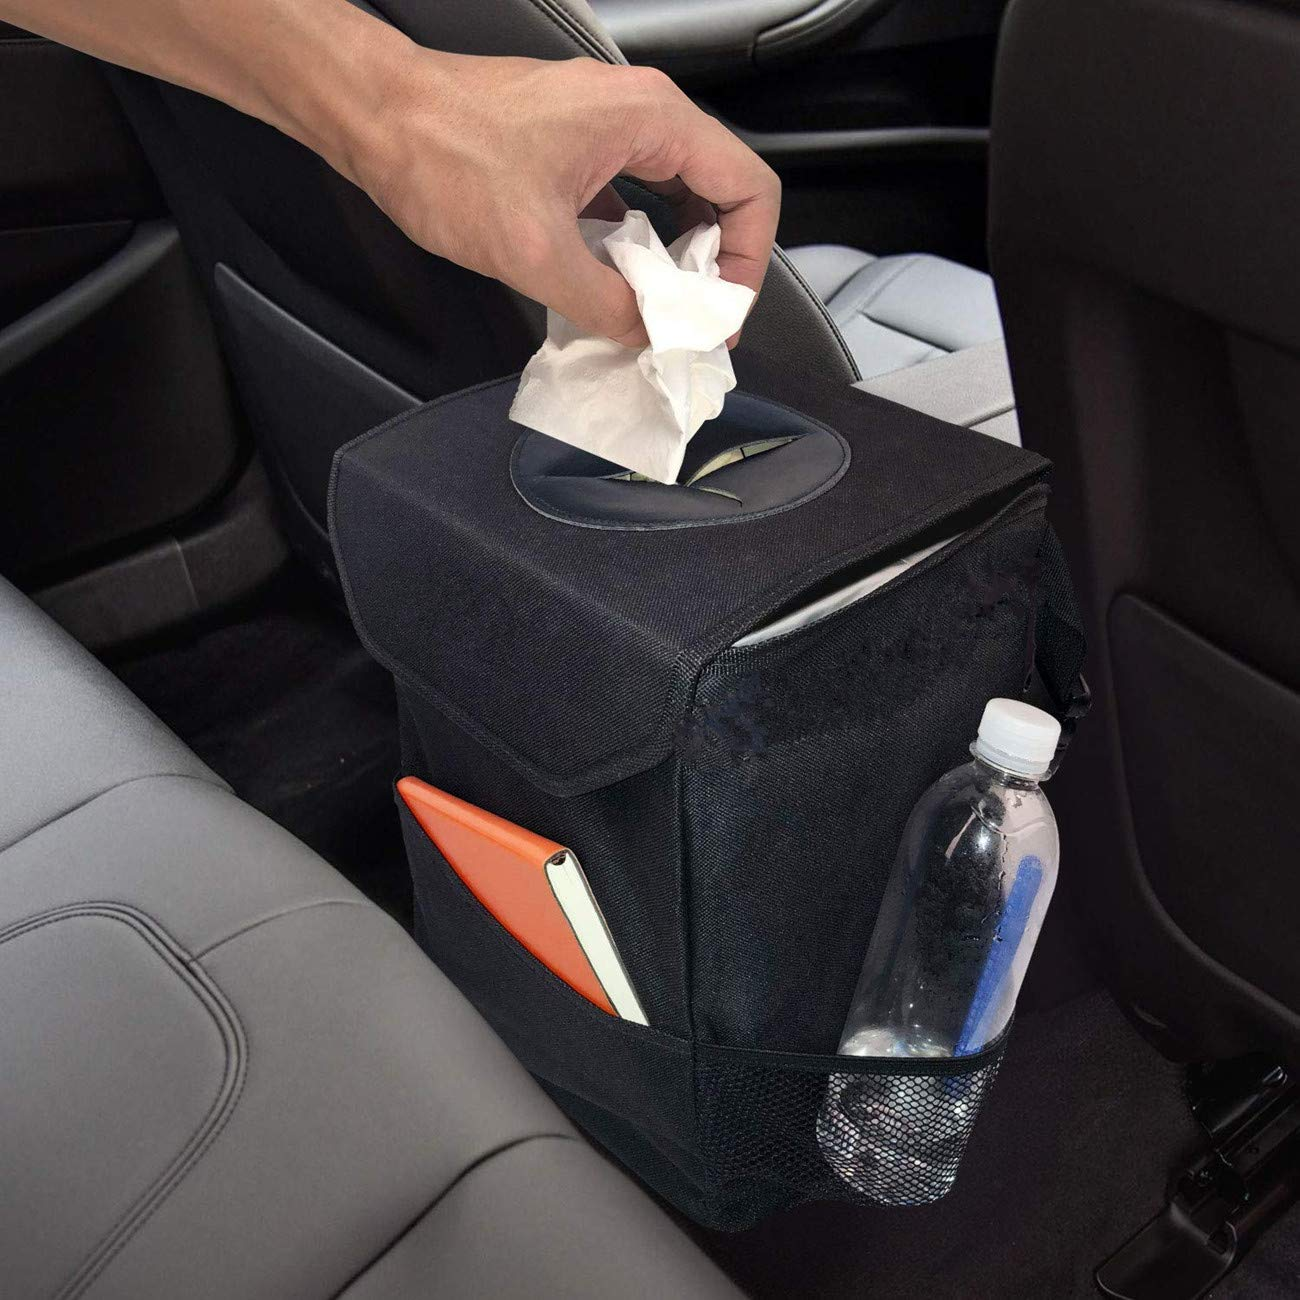 Car Trash Can, Waterproof Odor Blocking Car Trash Bag with 3 Storage Pockets, Auto Litter Garbage Bag, Black Fincy Palmoo